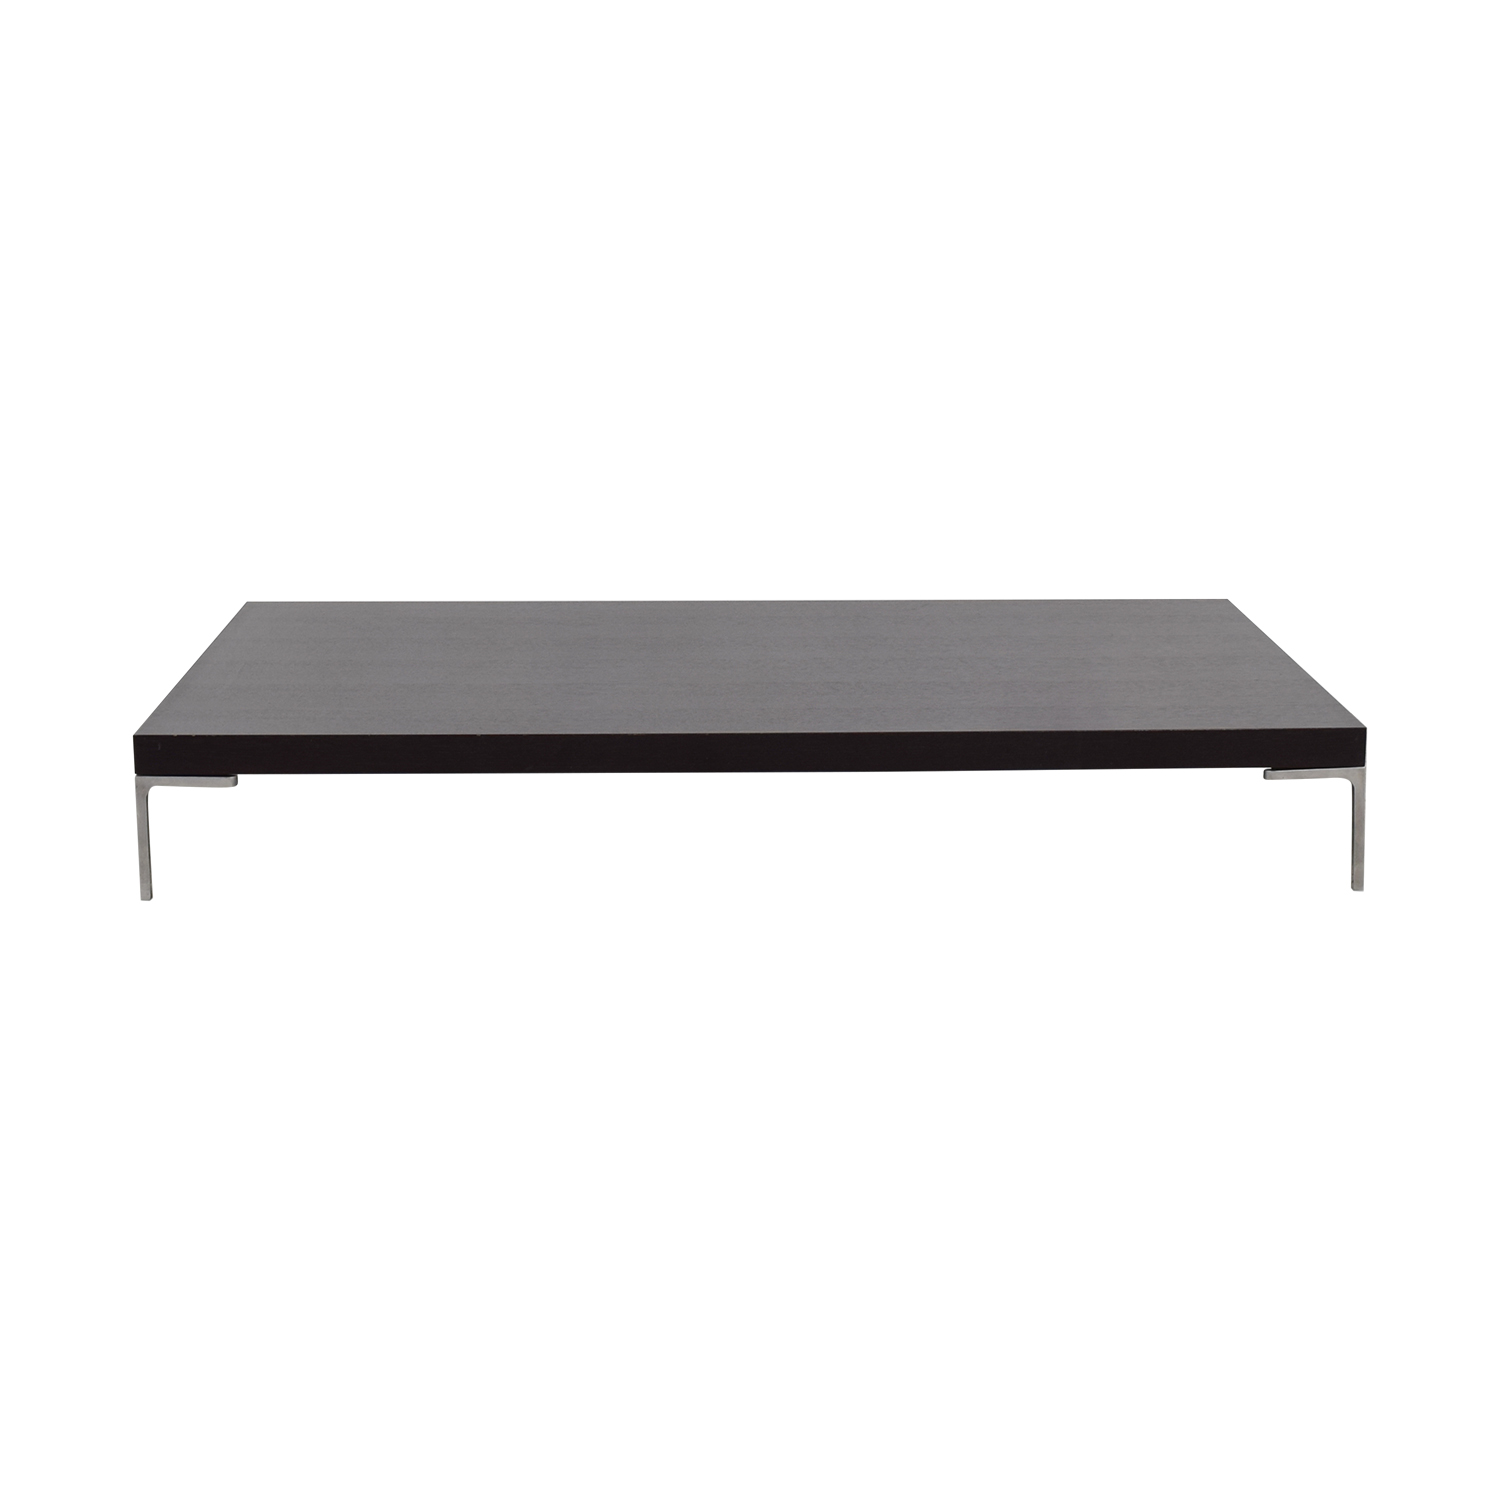 B&B Italia Wooden Modern Coffee Table / Tables